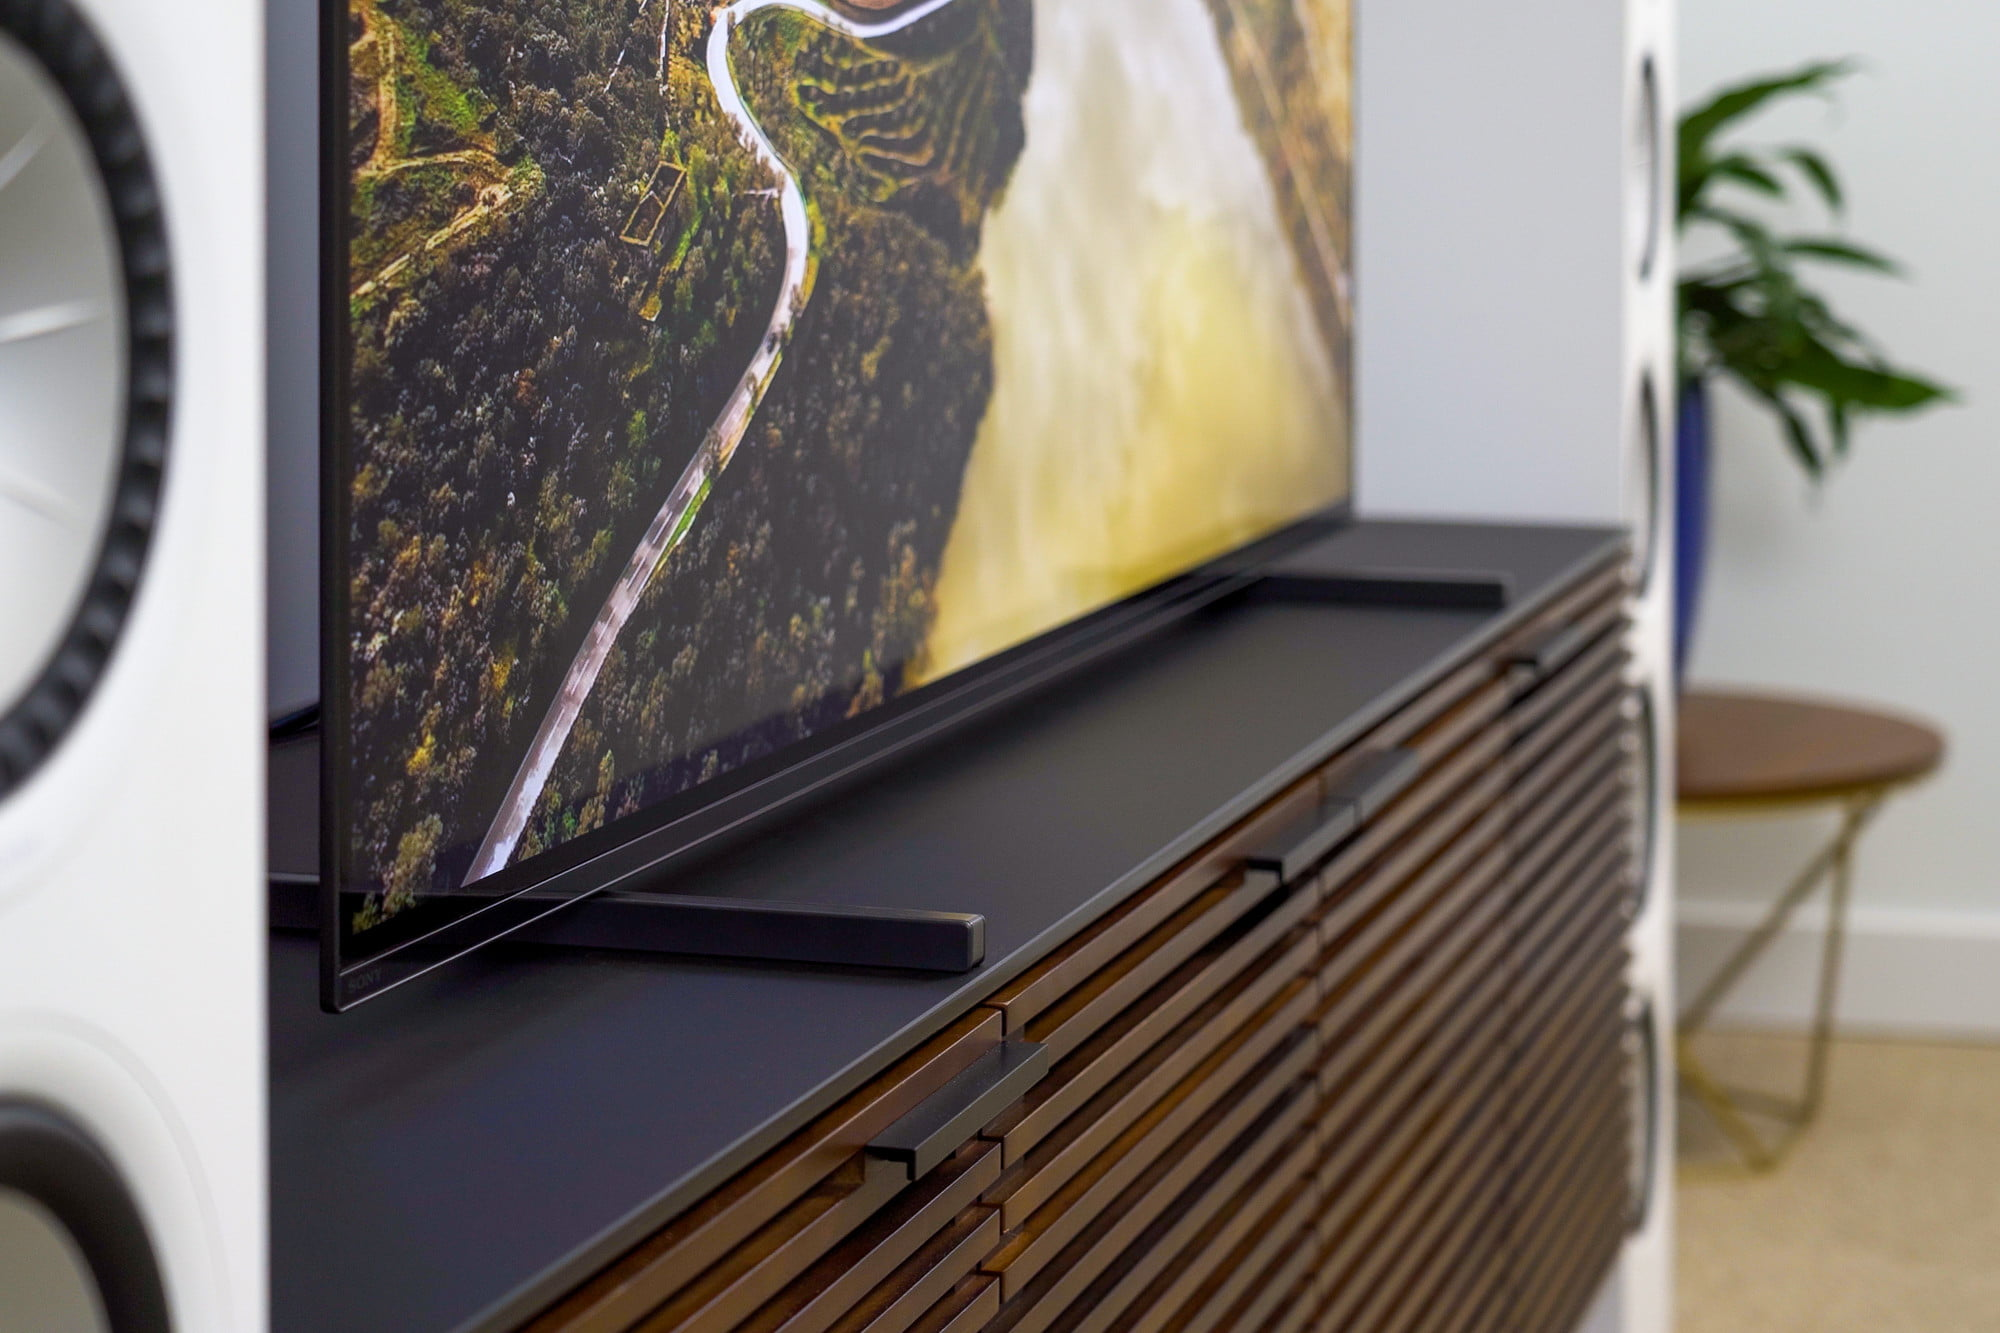 Sony A80J sitting on media console. Image is a closeup on the tv's stand.